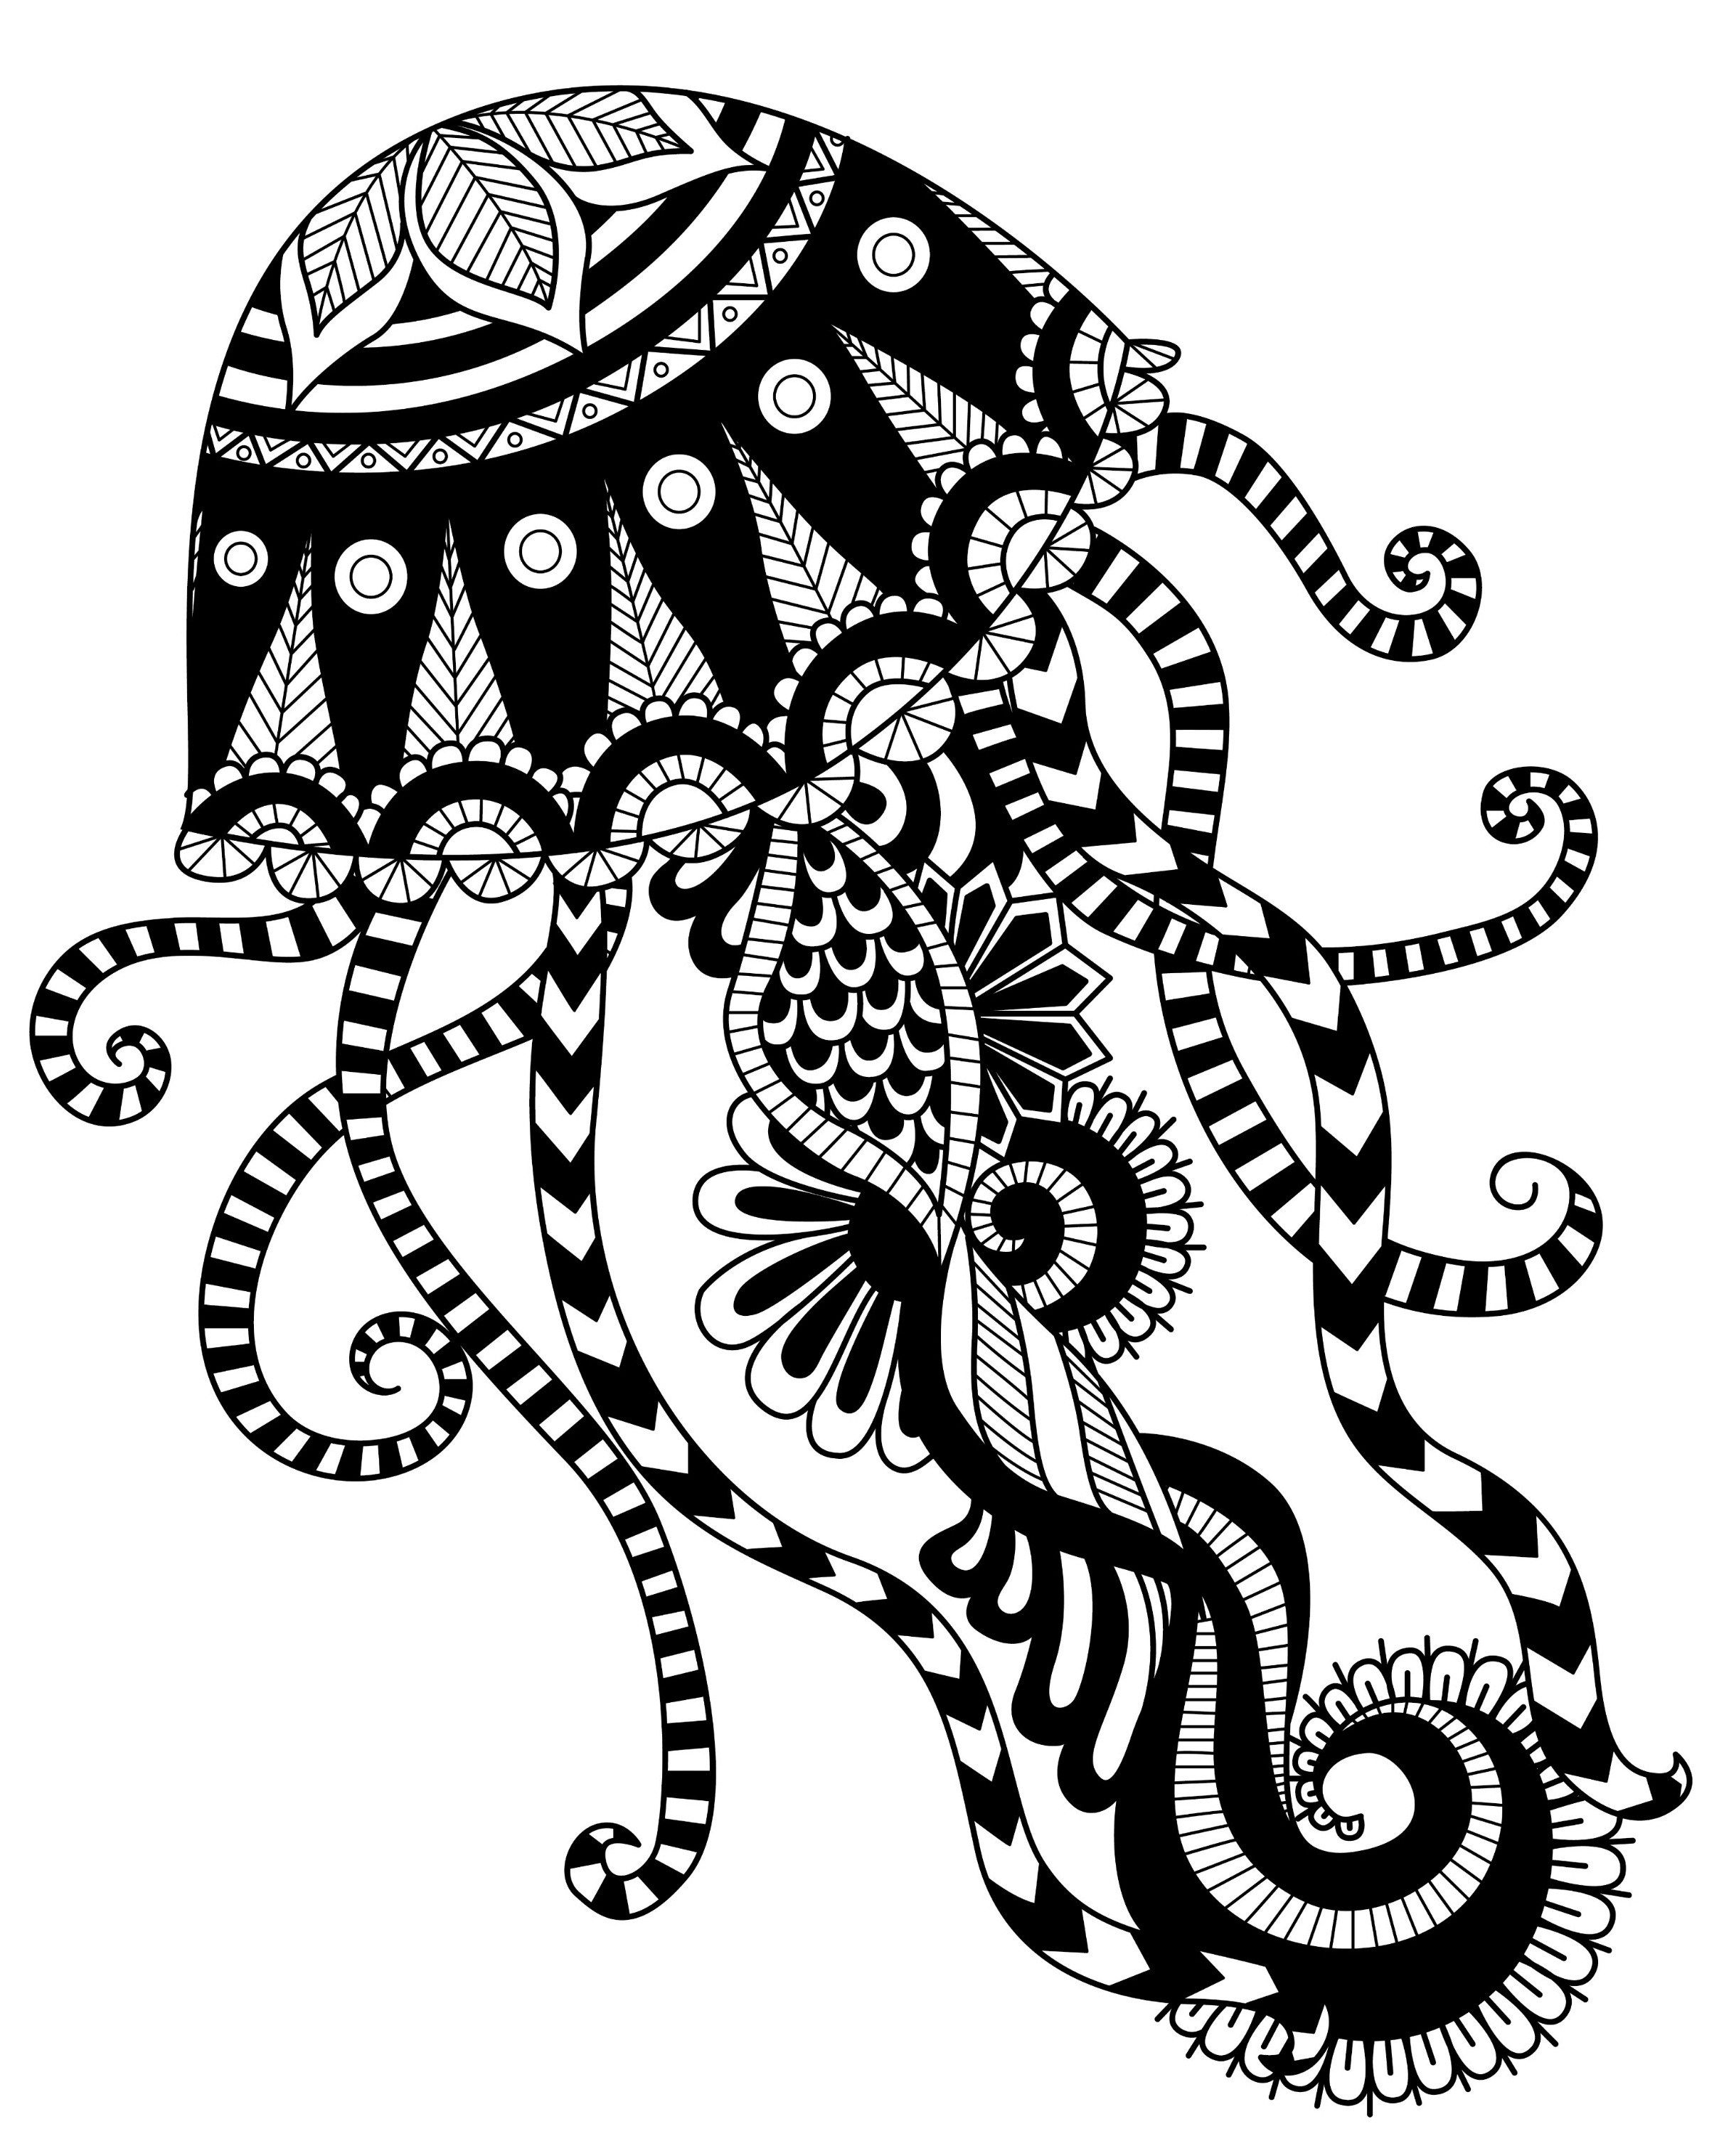 Jellyfish Mandala Coloring Page Art Coloring Pages Designs